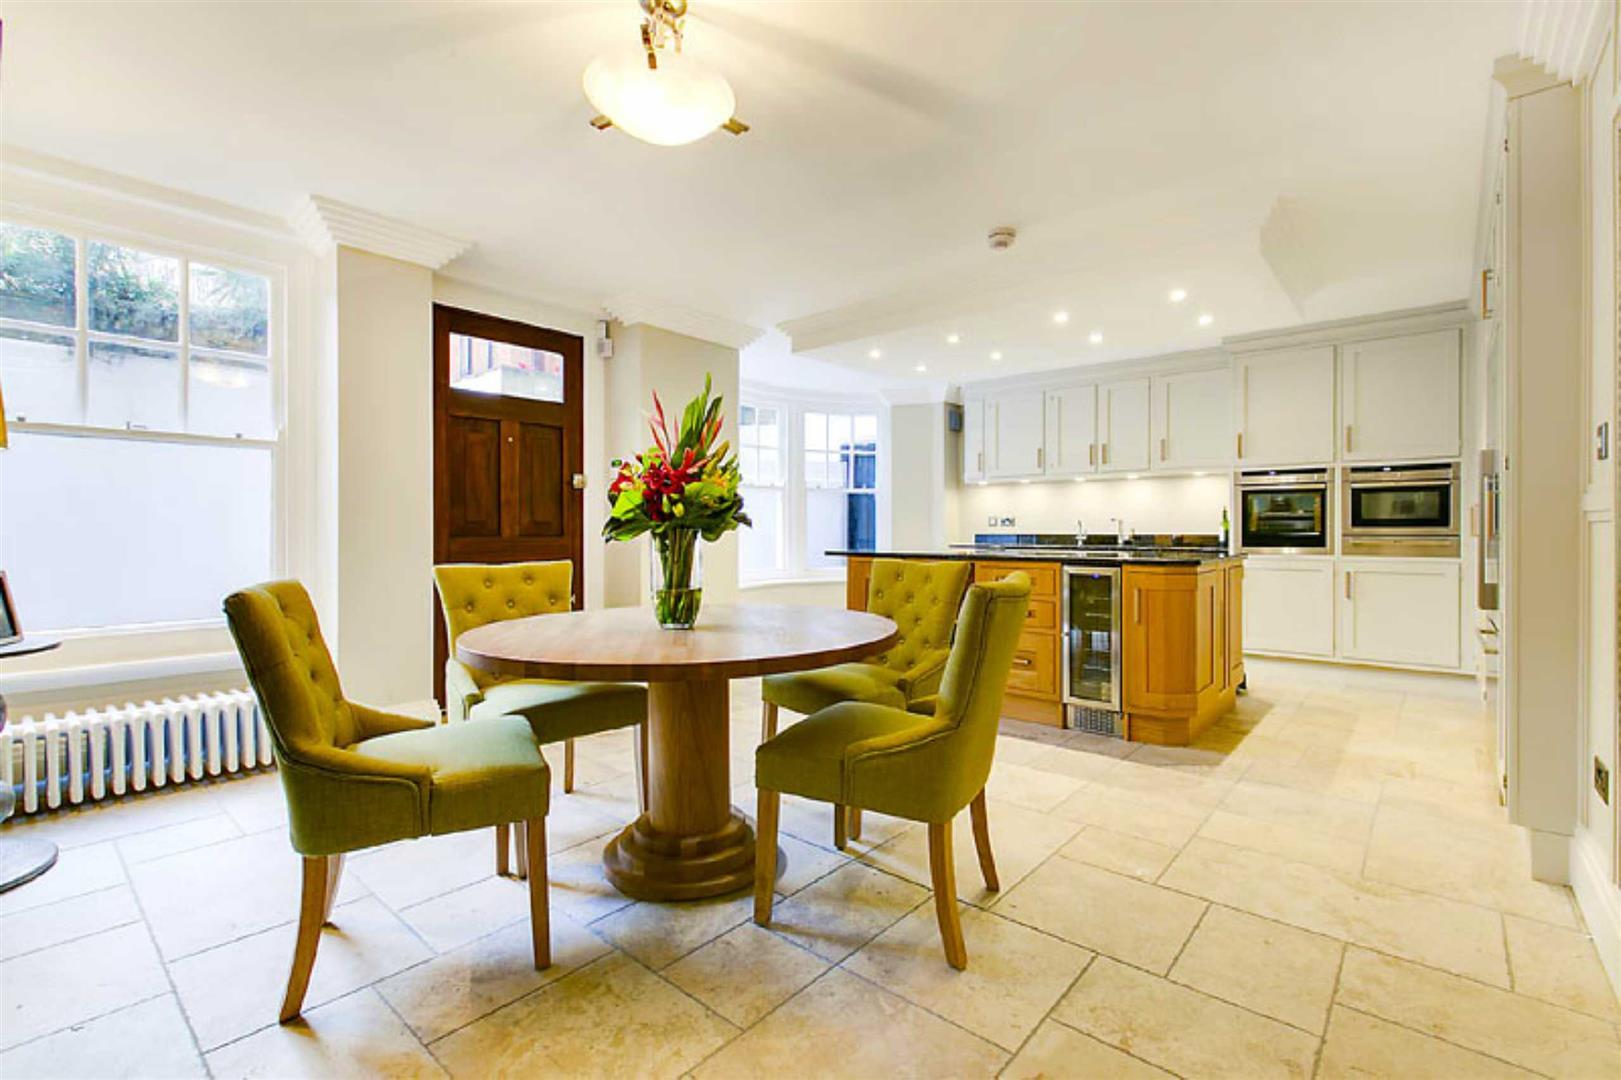 4 Bedrooms Flat for sale in Fitzjames Avenue, London